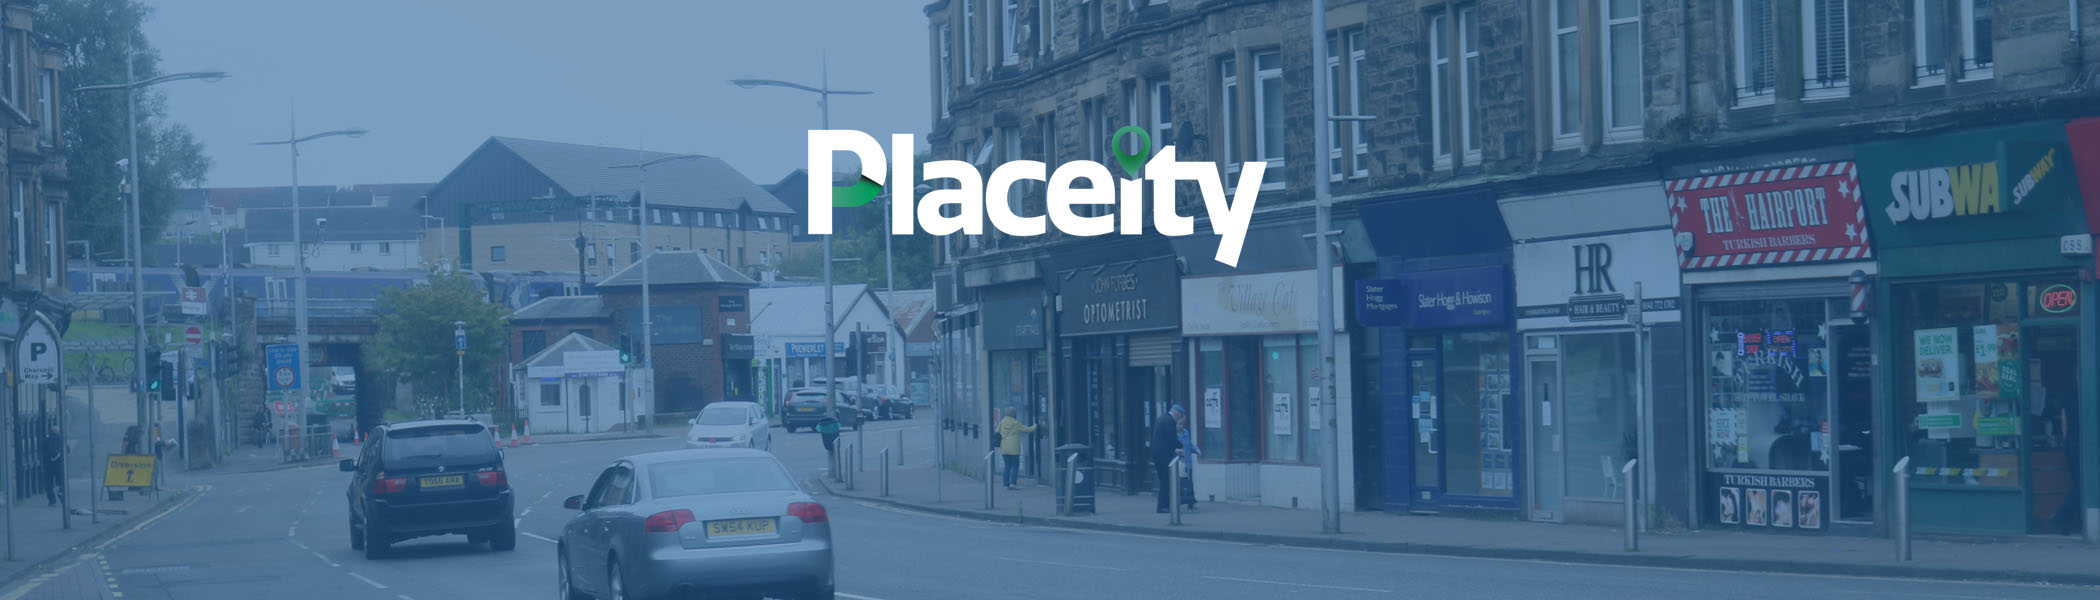 Placeity launch in Bishopbriggs